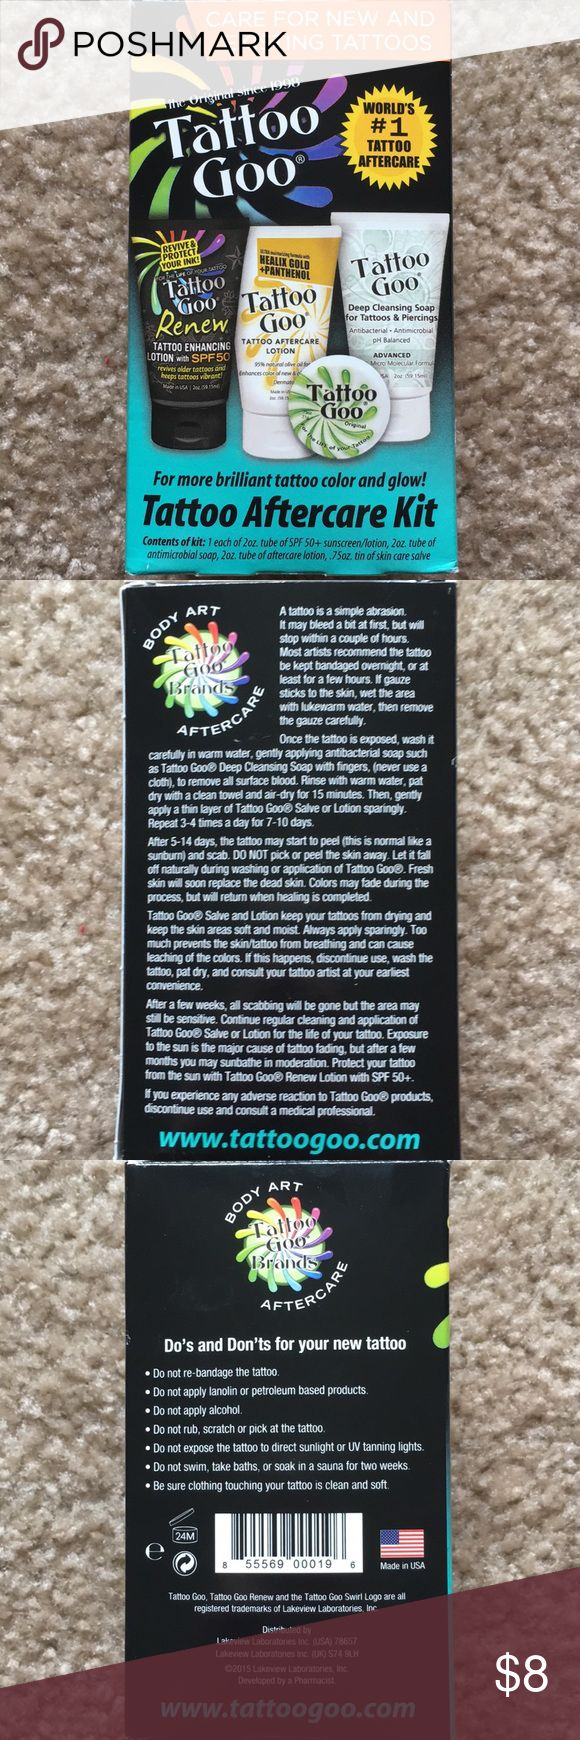 Tattoo Aftercare Kit Tattoo Goo - Tattoo Aftercare Kit  *NWOT*  Brand New! Only box was opened! Product never used!  Comes with - Tattoo Enhancing Lotion w/ SPF50+ Tattoo Aftercare Lotion Deep Cleansing Soap for Tattoos & Piercings Enhancing Color Goo  ✨Smoke Free Home ✨100% Authentic  ✨Reasonable Offers Only ⚠️*NO LOW BALL*⚠️ Flash Tattoo Other